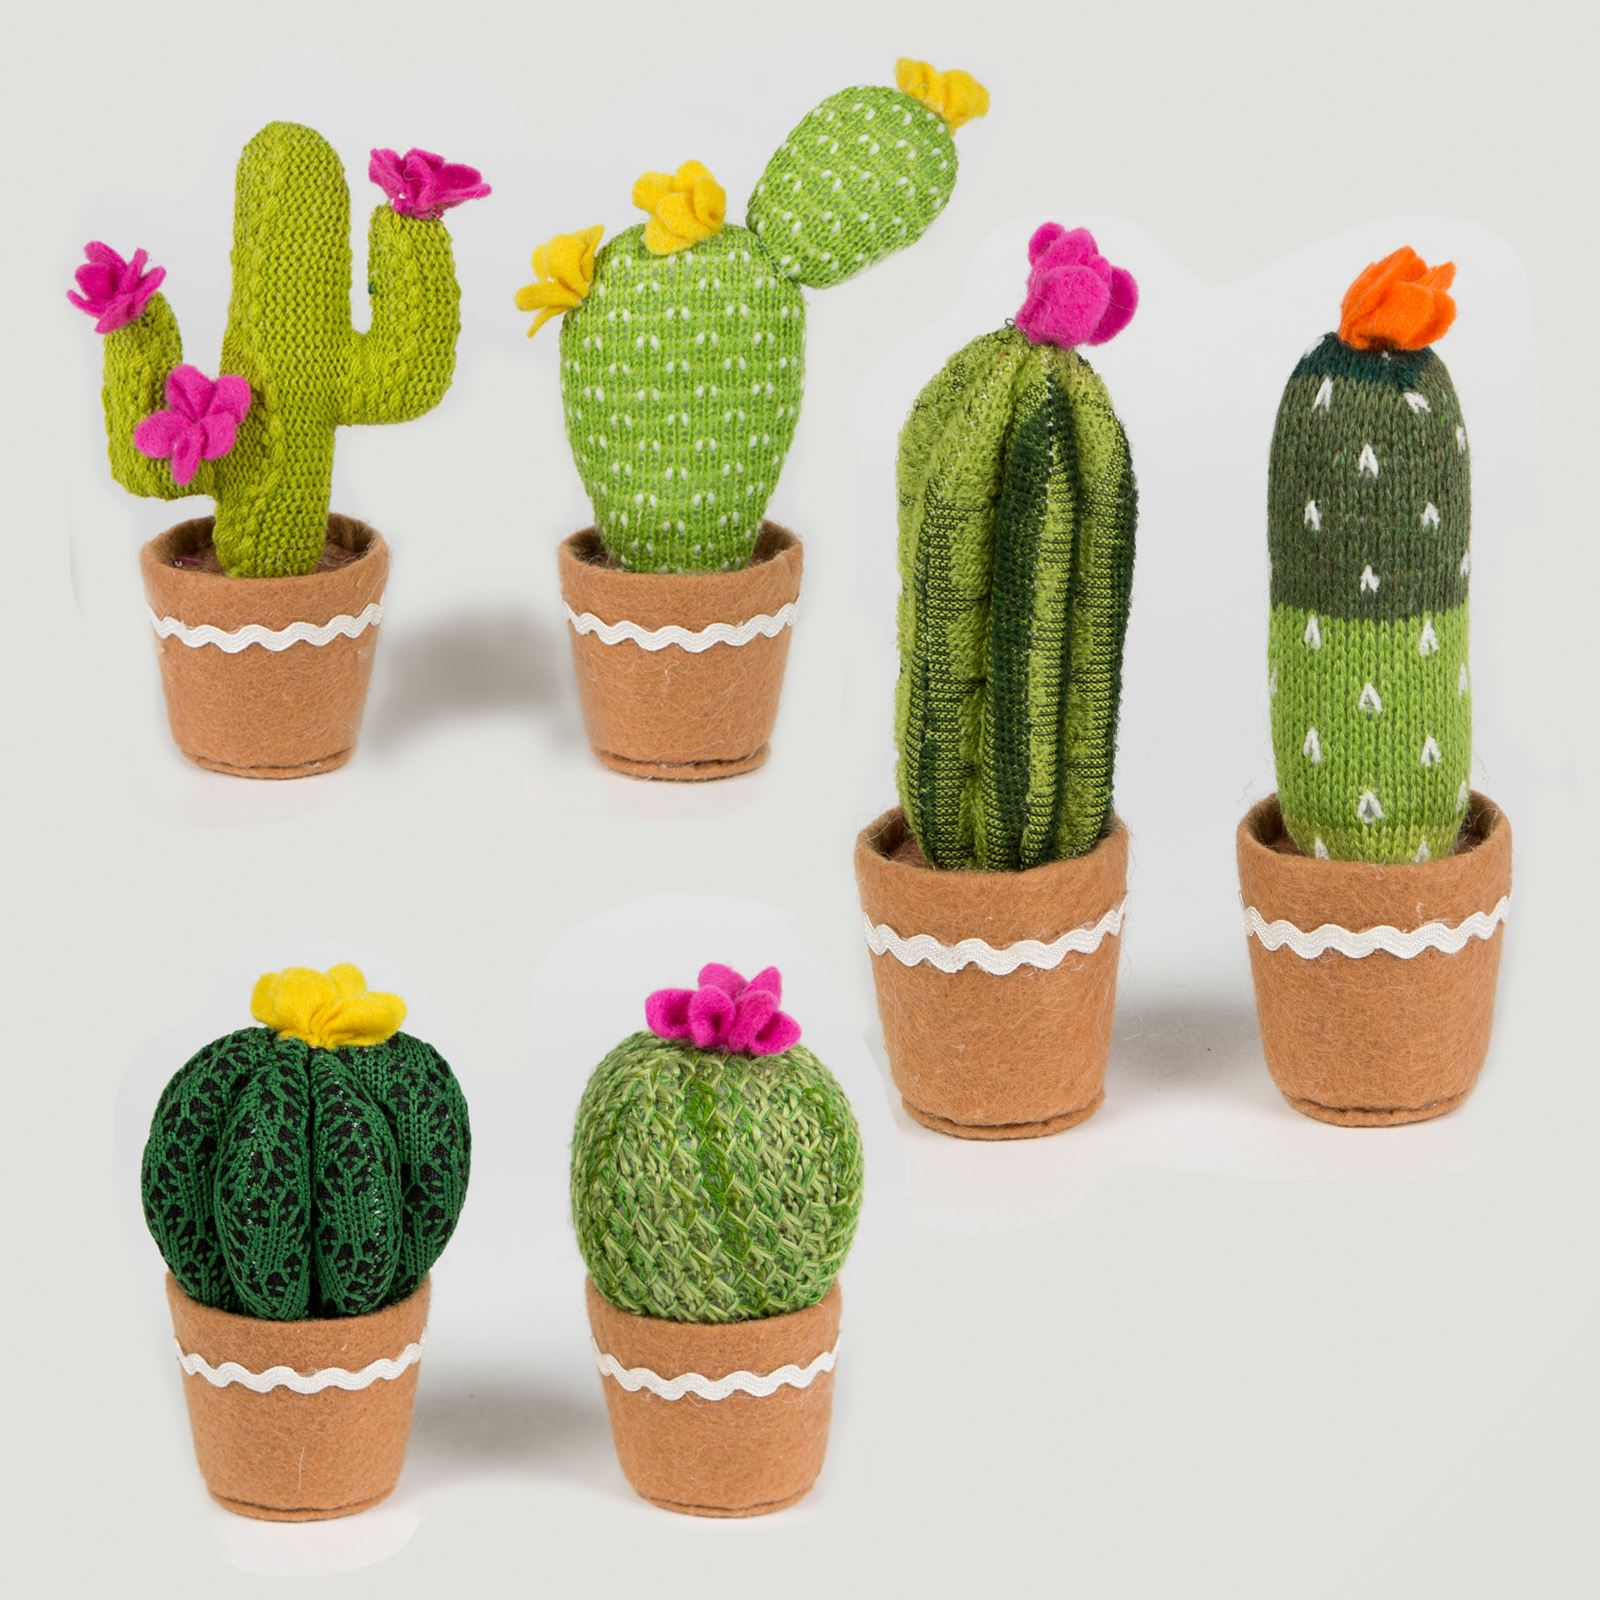 sass belle colourful cactus cacti knitted fabric faux plant fun pot decoration ebay. Black Bedroom Furniture Sets. Home Design Ideas